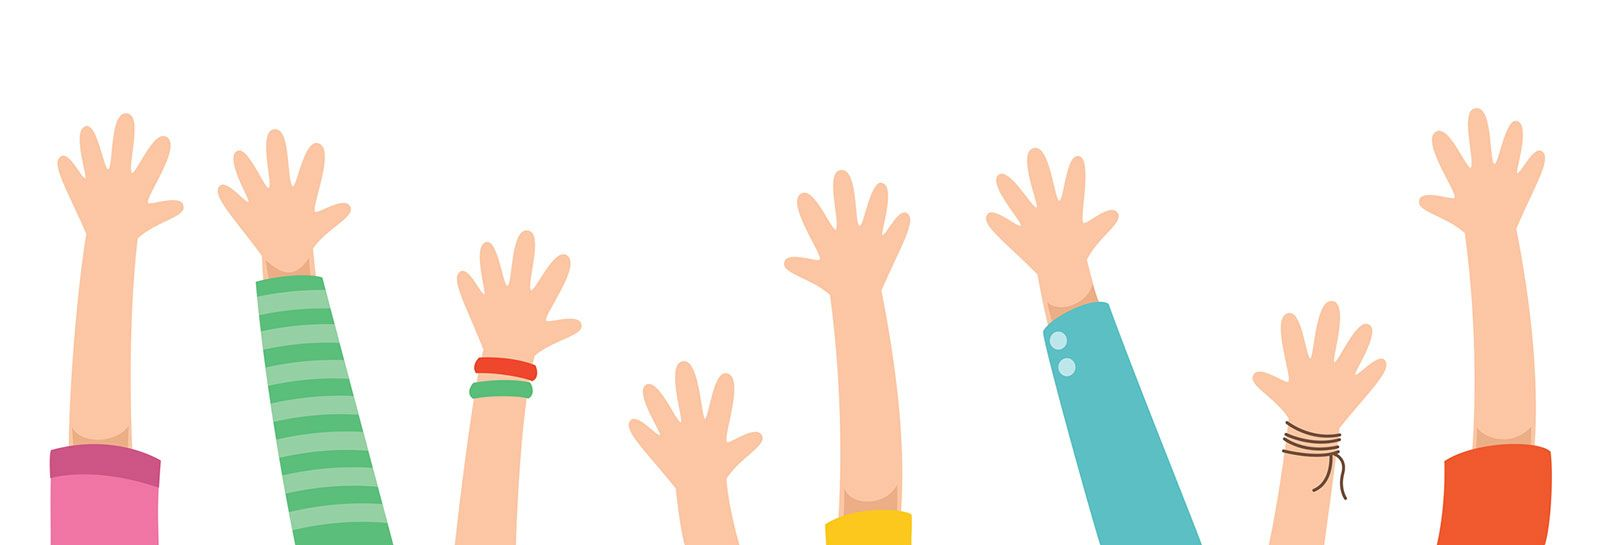 volunteers with hands in the air banner image